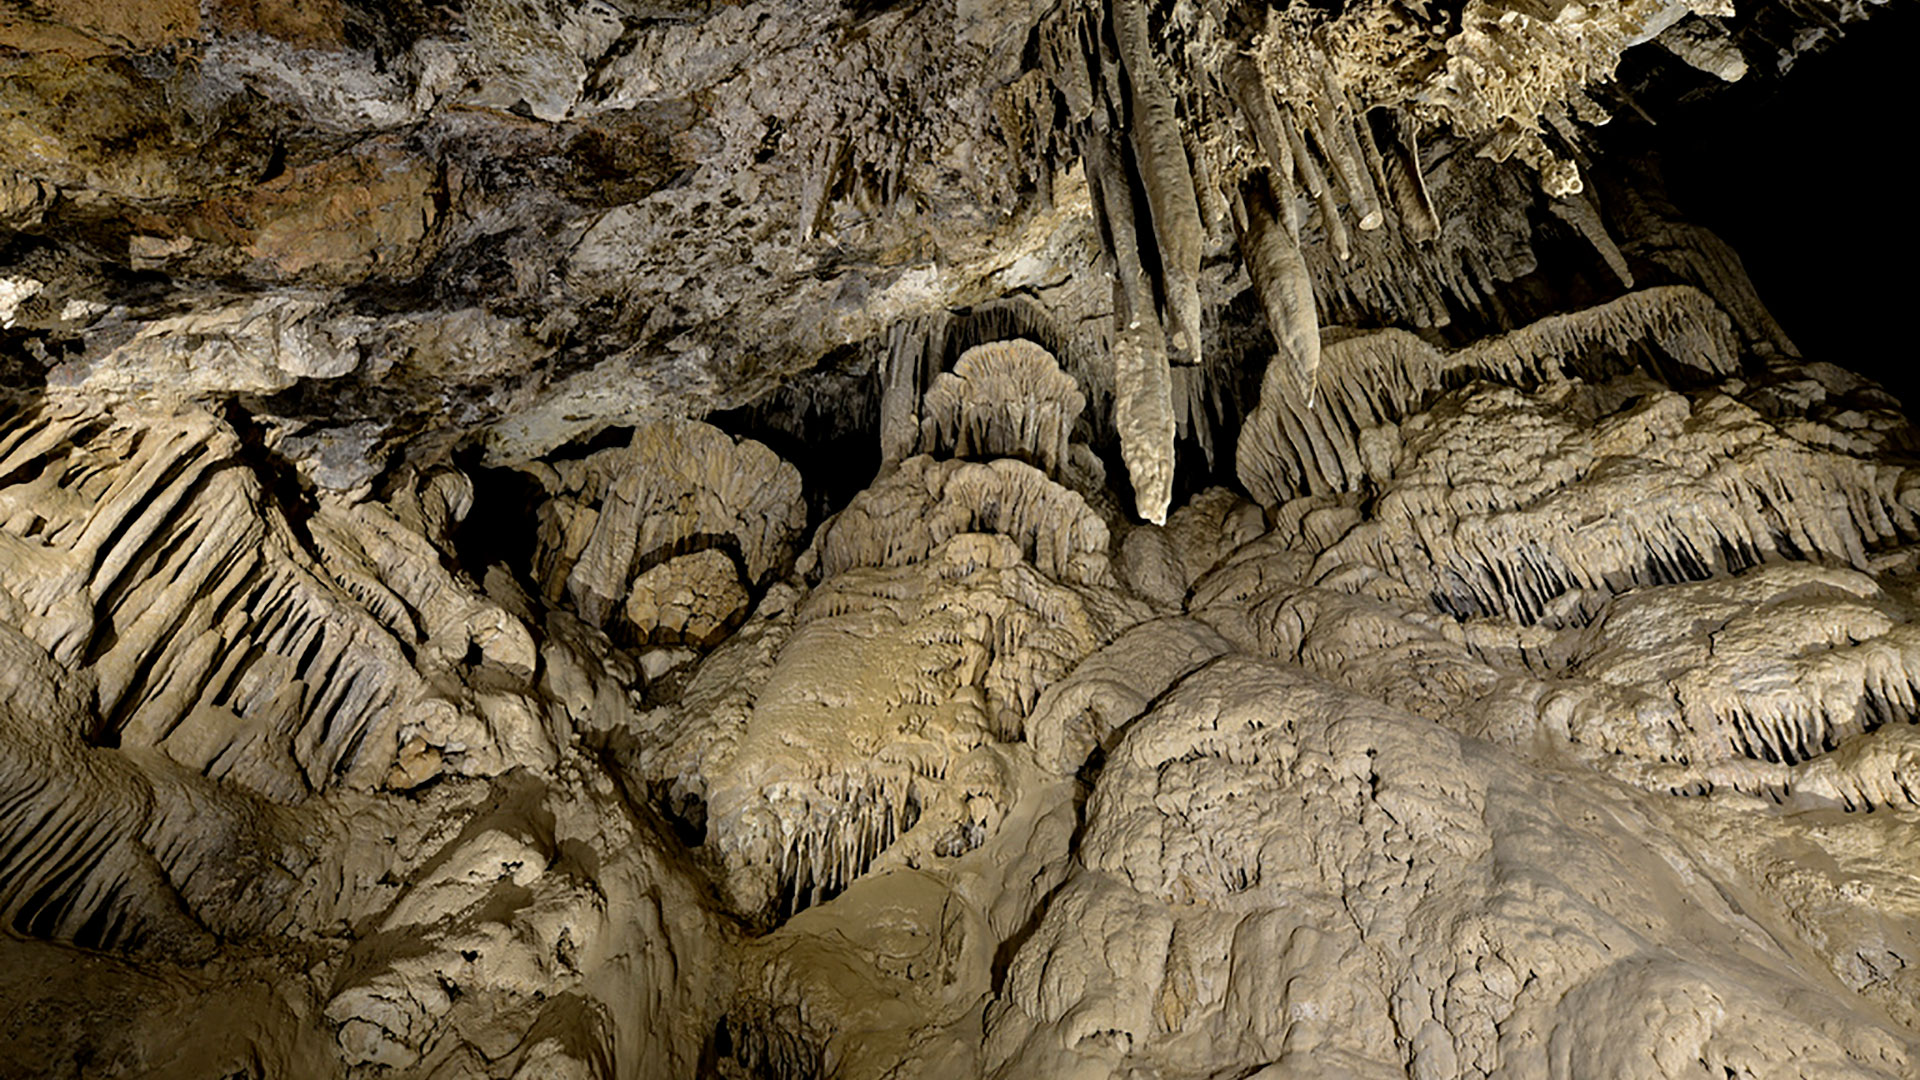 mitchell caverns interior